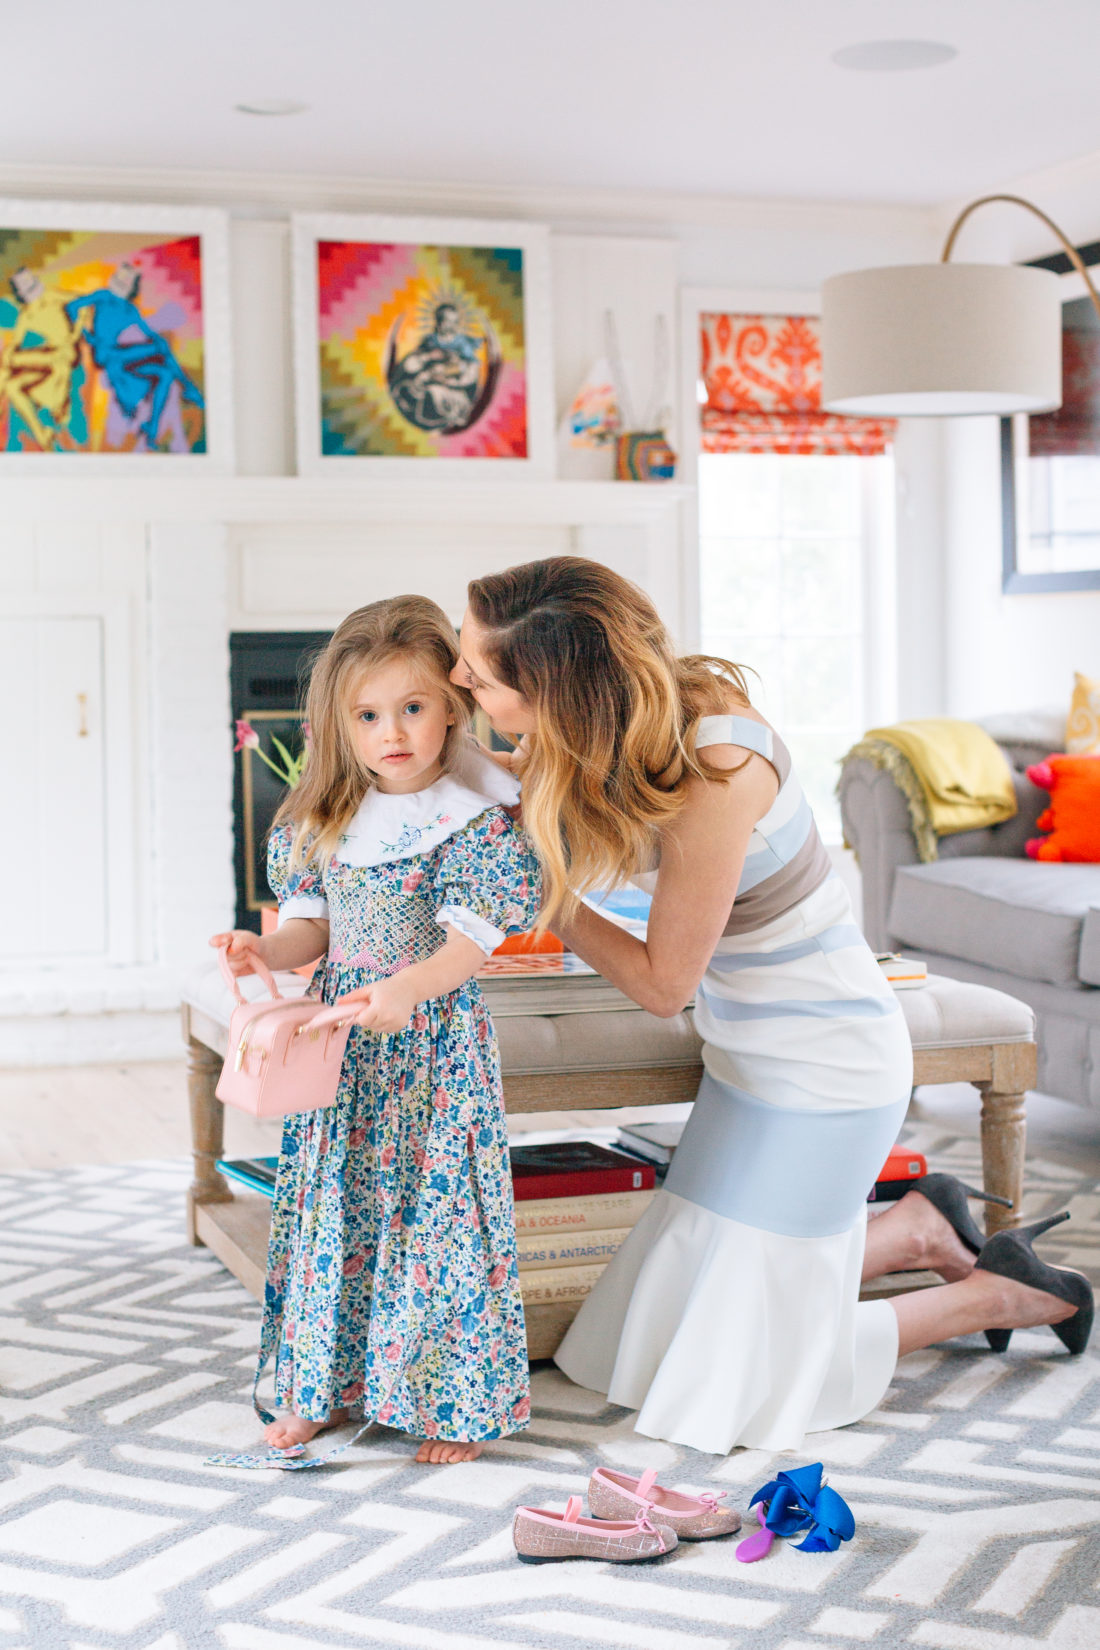 Eva Amurri Martino leans in to whisper in three year old daughter Marlowe's ear as she dresses her in a floral vintage smocked dress for easter and combs through her hair